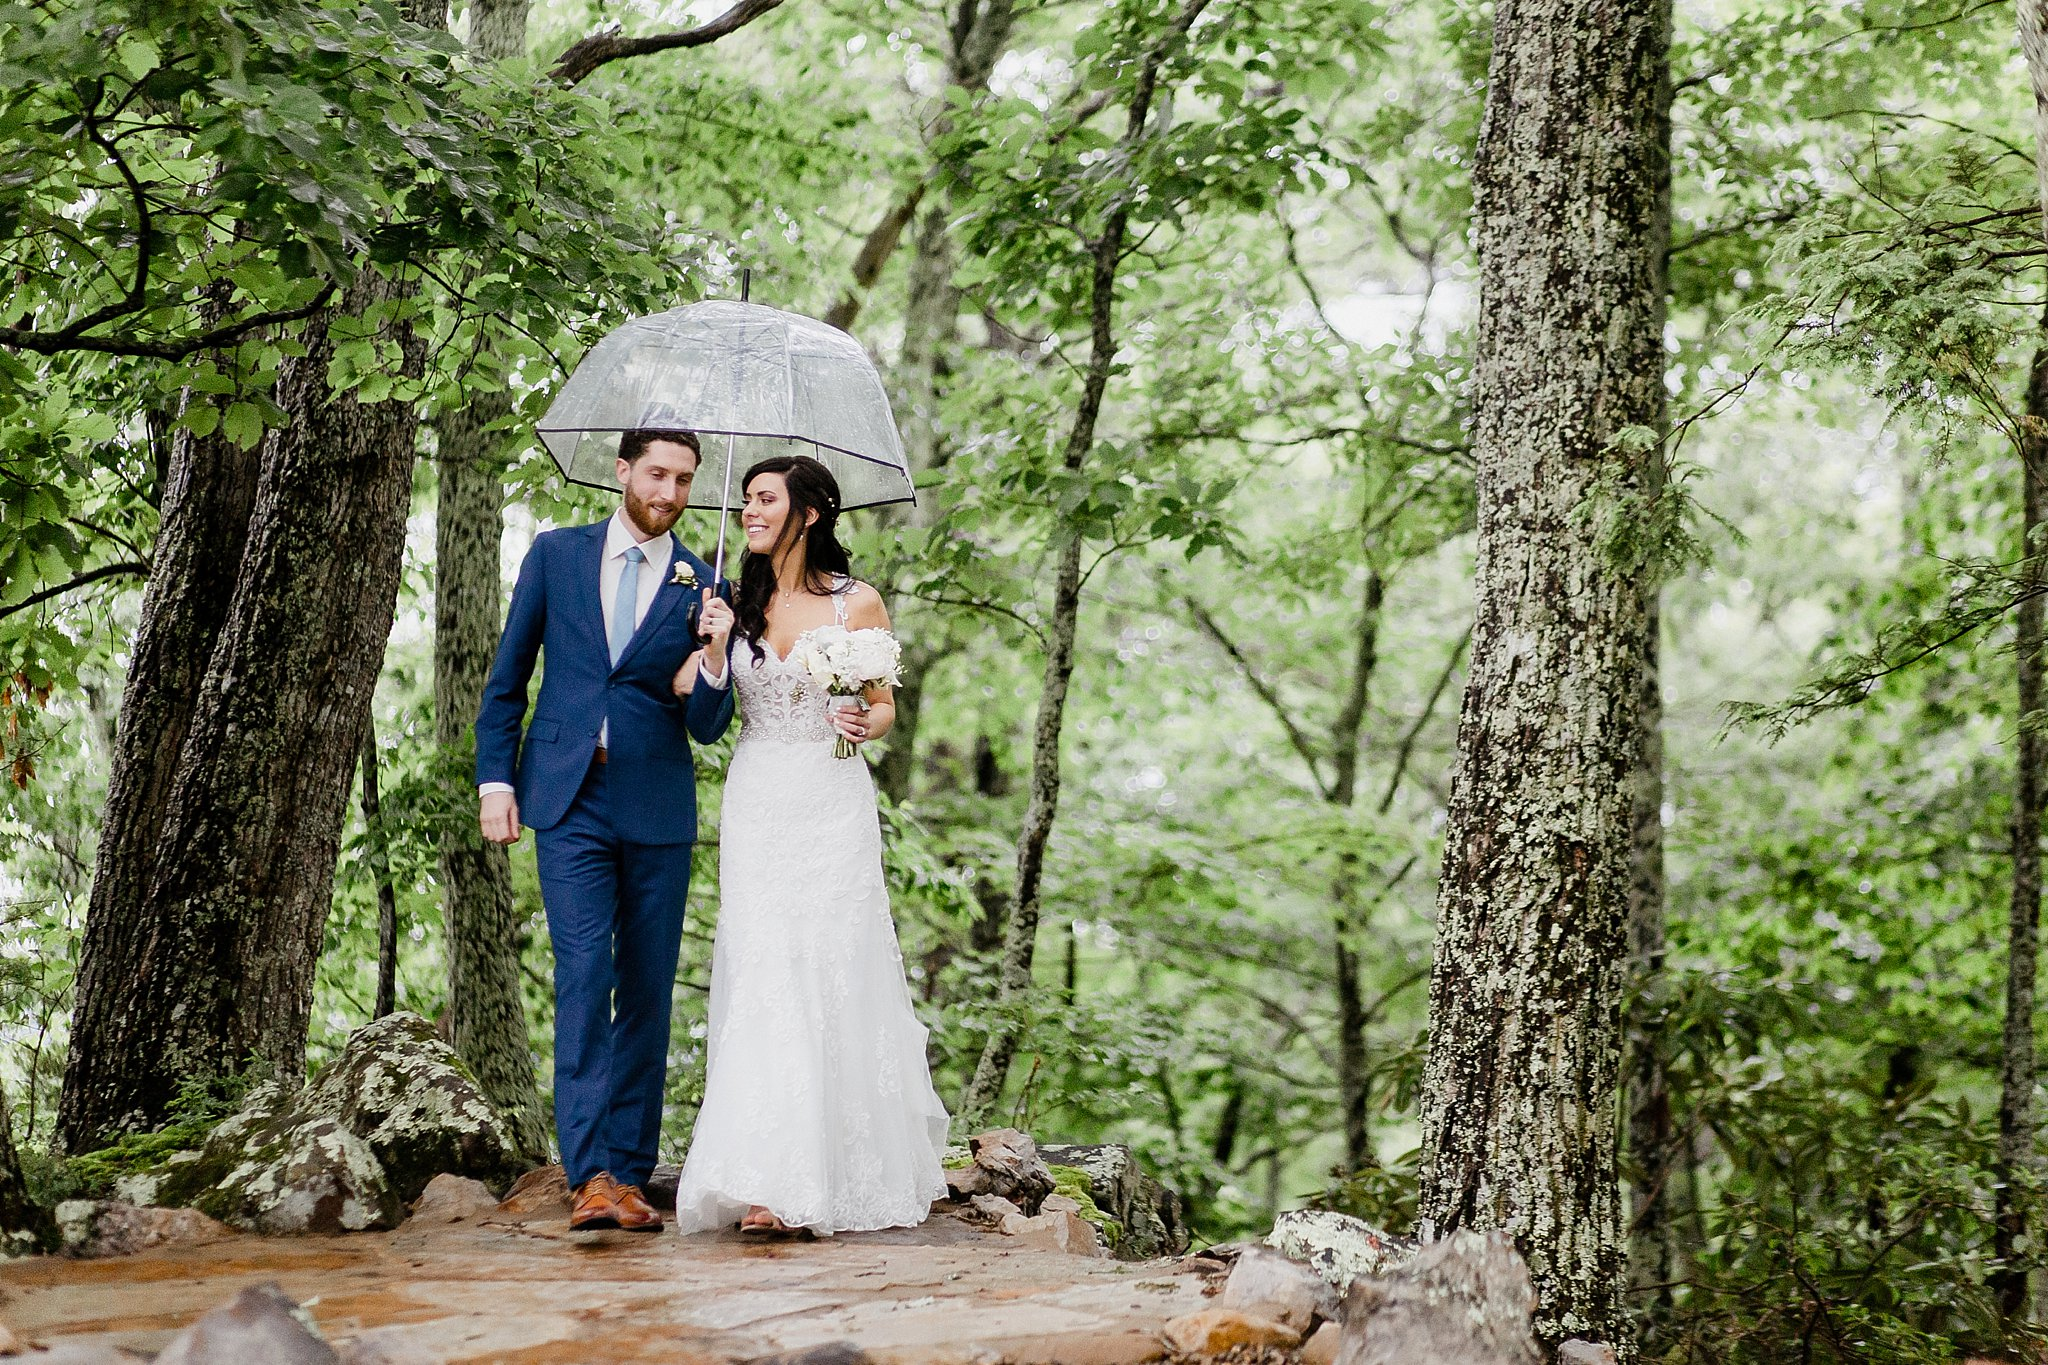 Adam + Alison - PIGEON FORGE, TENNESSEE